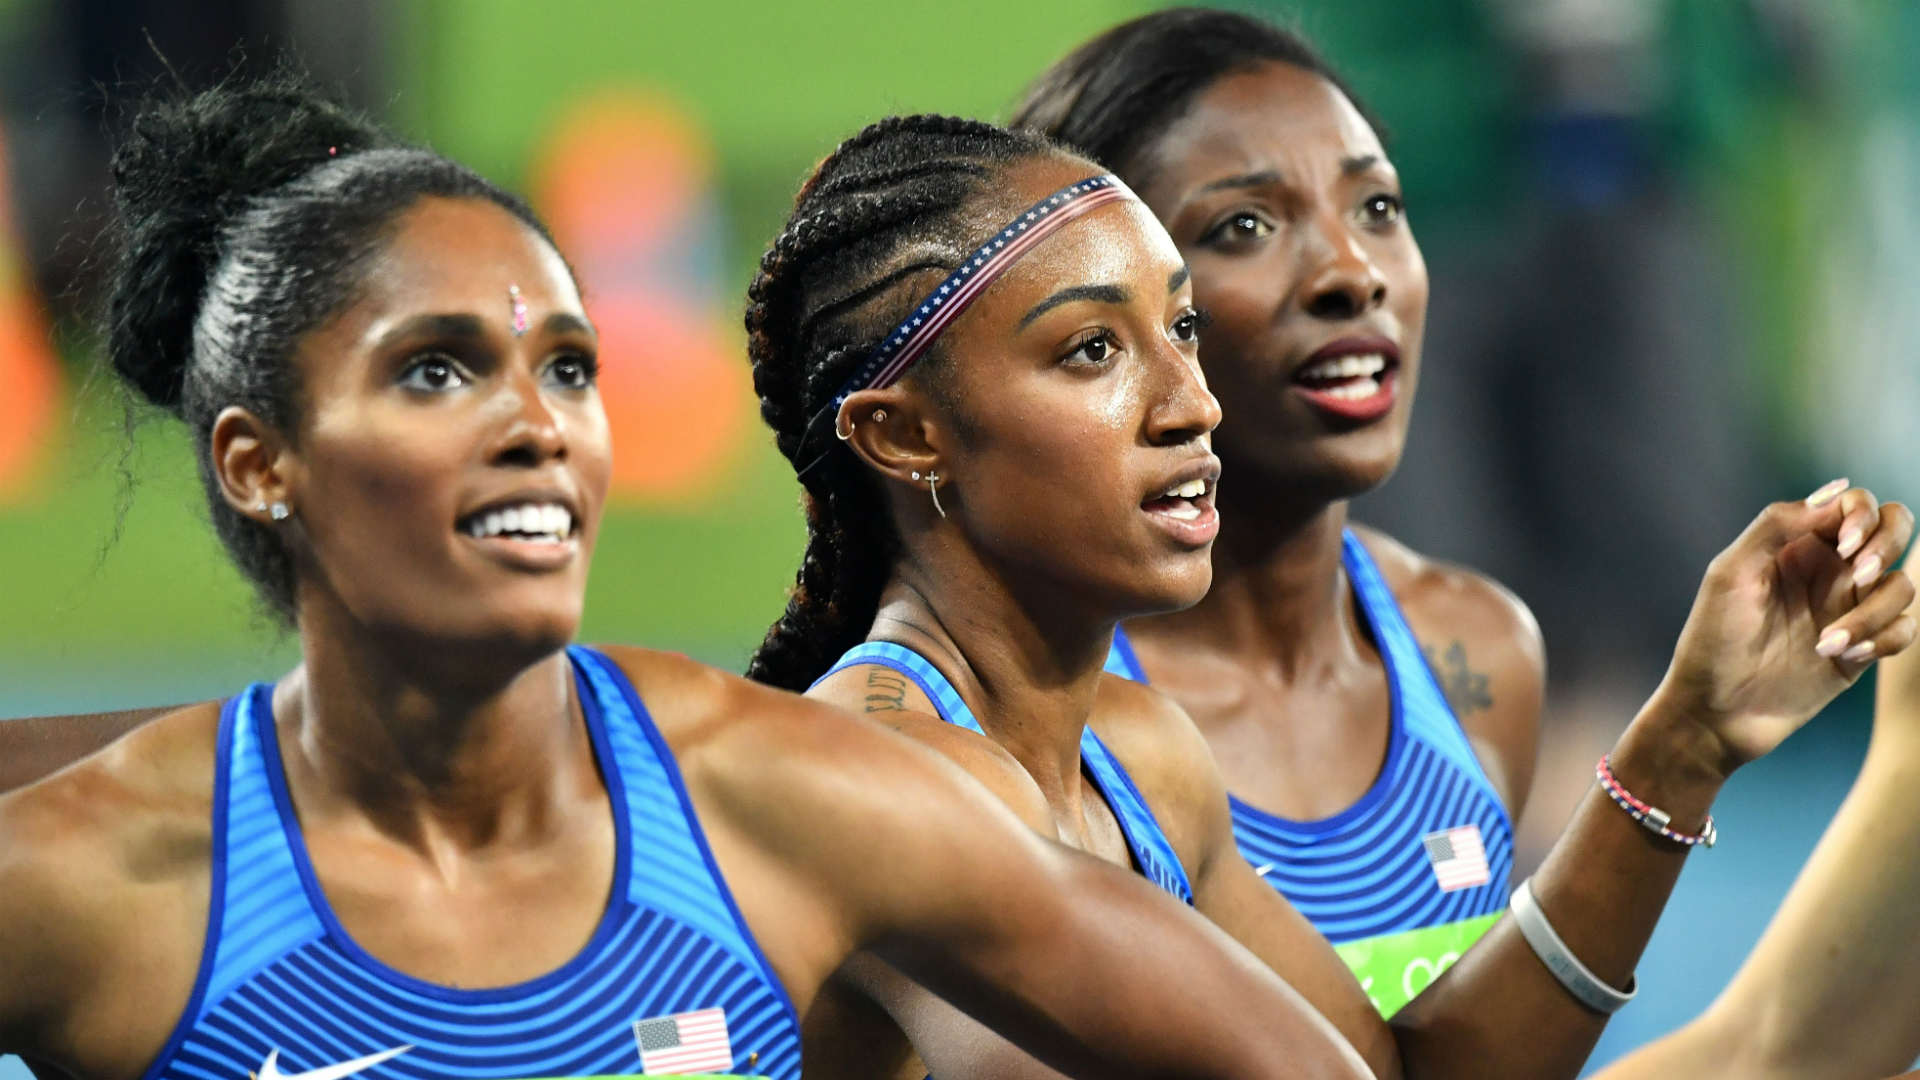 Brianna Rollins leads United States hurdles sweep at Rio 2016 Olympics